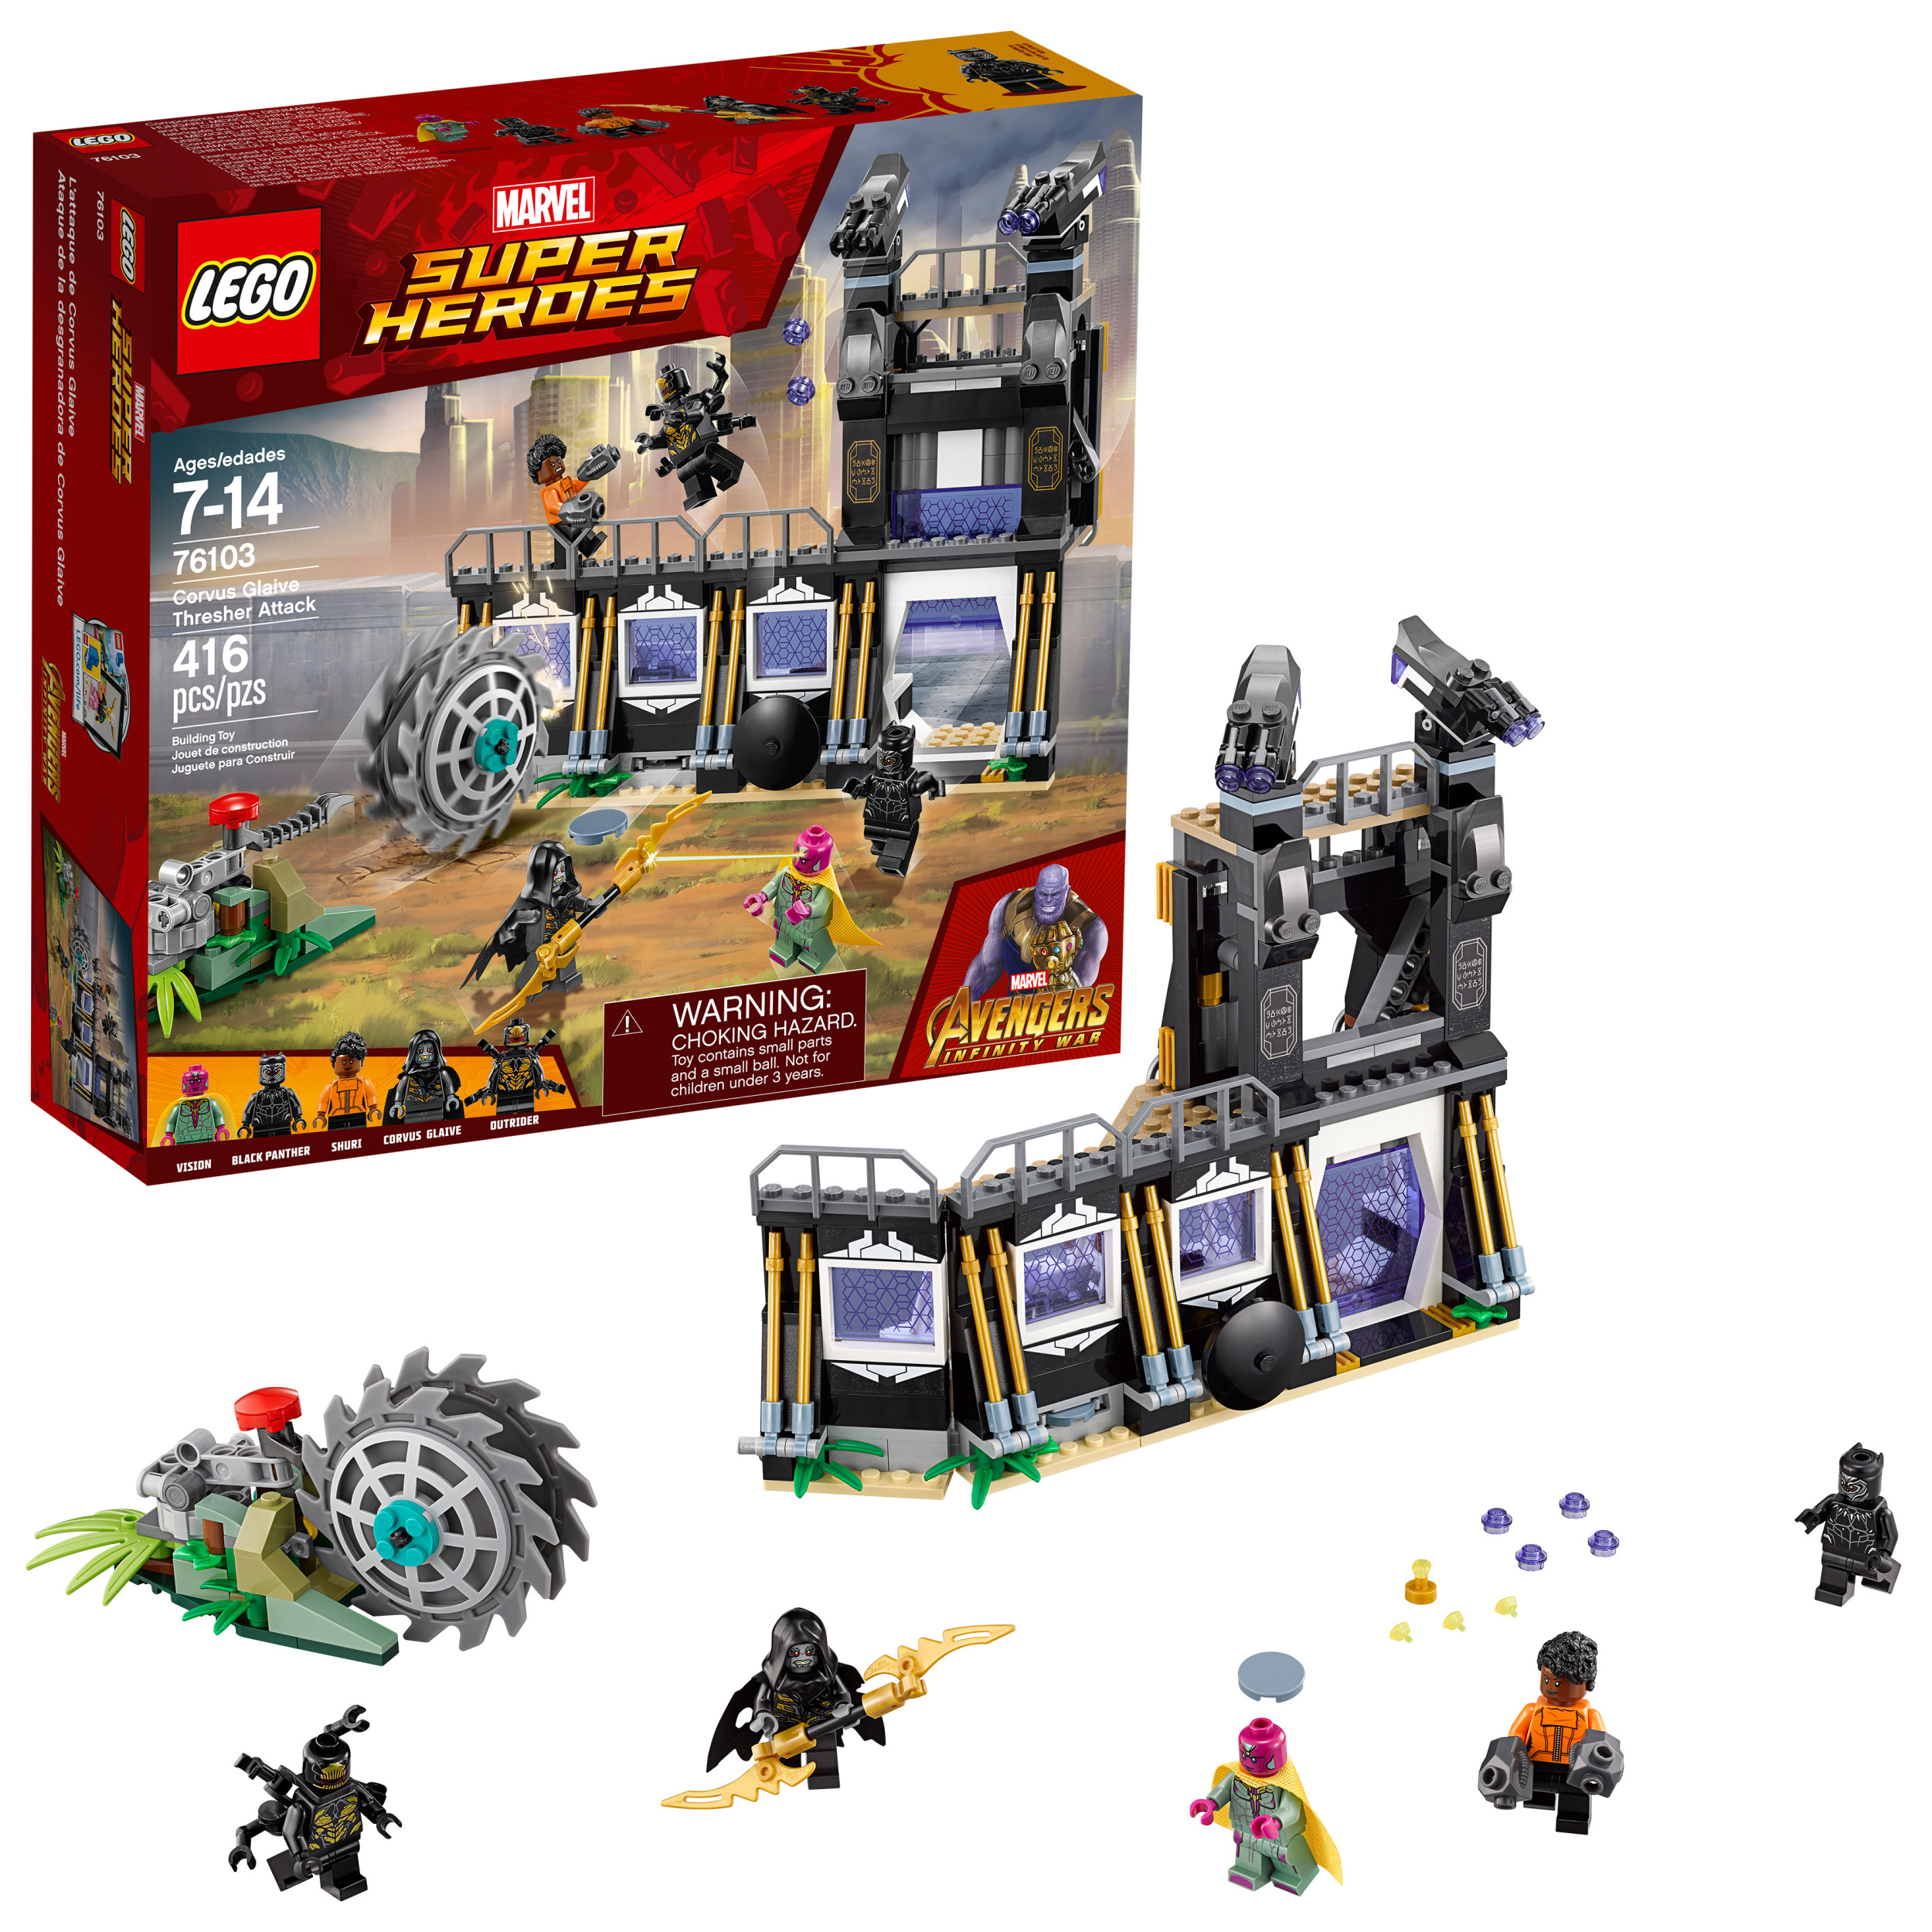 Lego Marvel Super Heroes Avengers Corvus Glaive Thresher Attack 76103 by LEGO System Inc